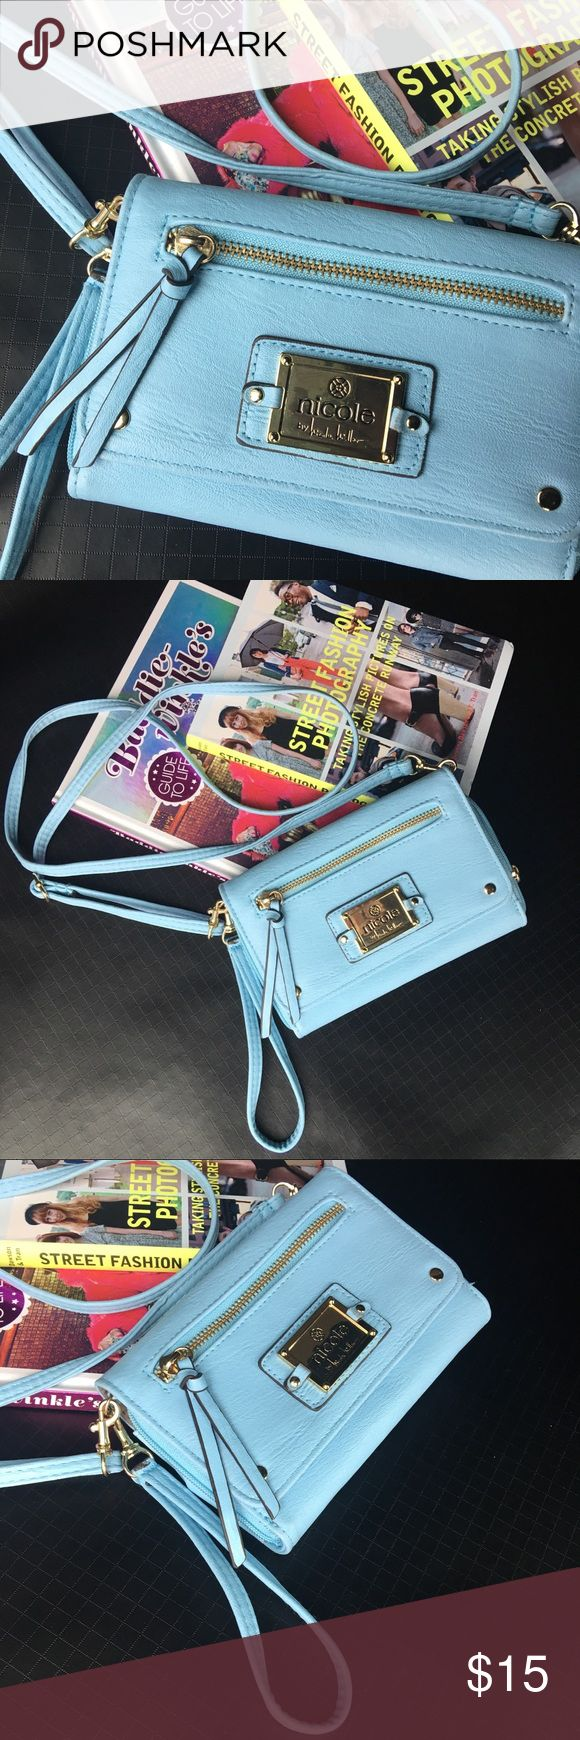 Nicoleby Nicole Miller Crossbody Wallet Great condition! Fits my iPhone Plus great! Nicole by Nicole Miller Bags Crossbody Bags